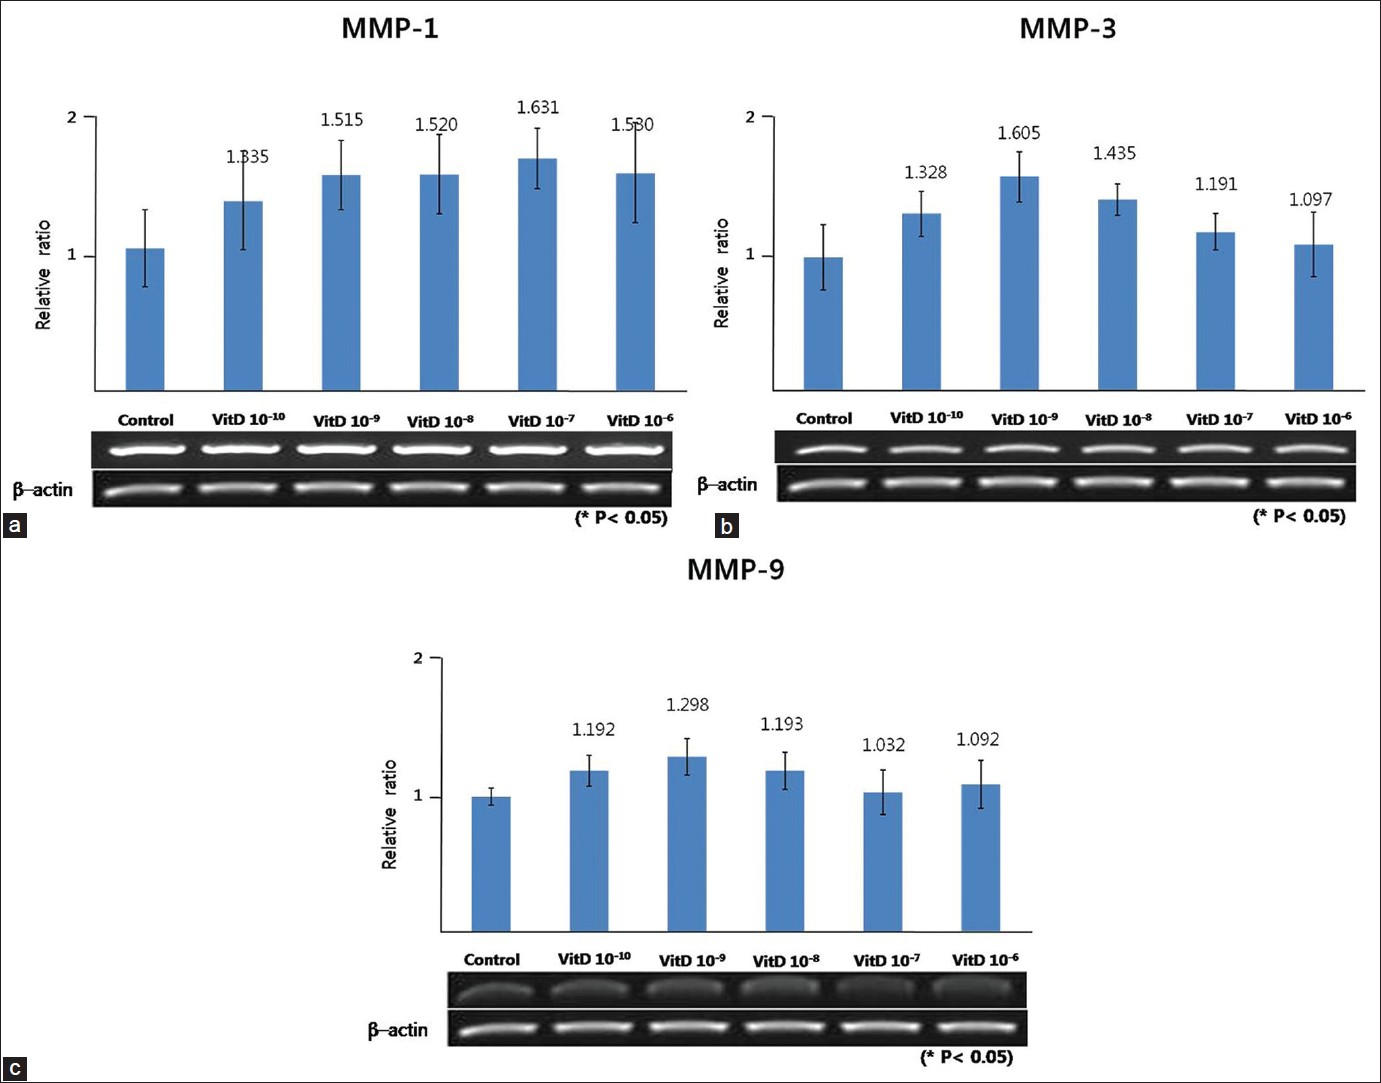 Figure 4: Effect of vitamin D on the gene expression of MMP-1 (a), MMP-3 (b), and MMP-9 (c) in cultured sebocytes